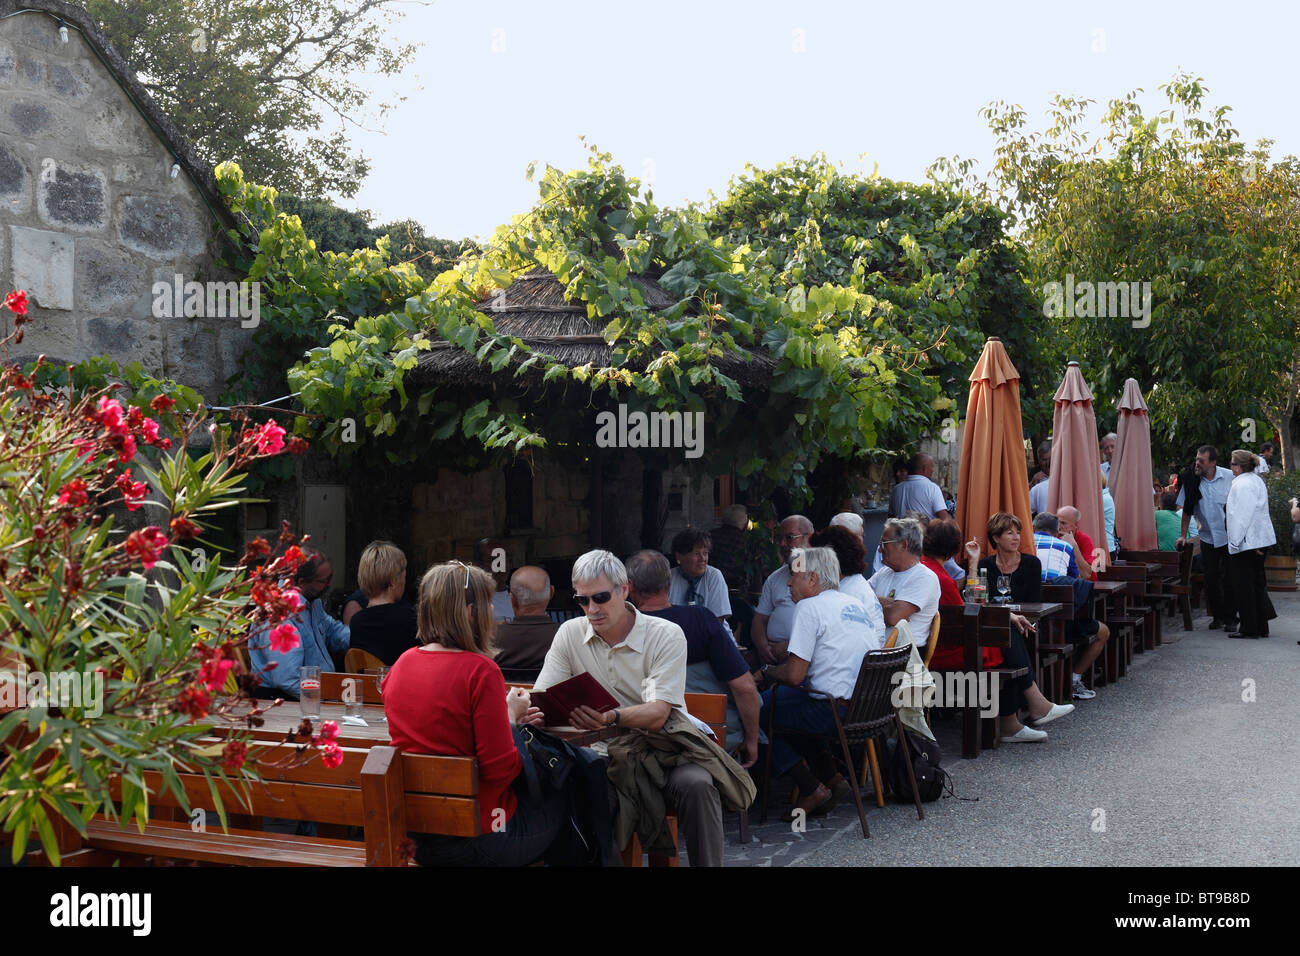 Tavern In The Kellergasse Alley In Purbach Am Neusiedler See Lake